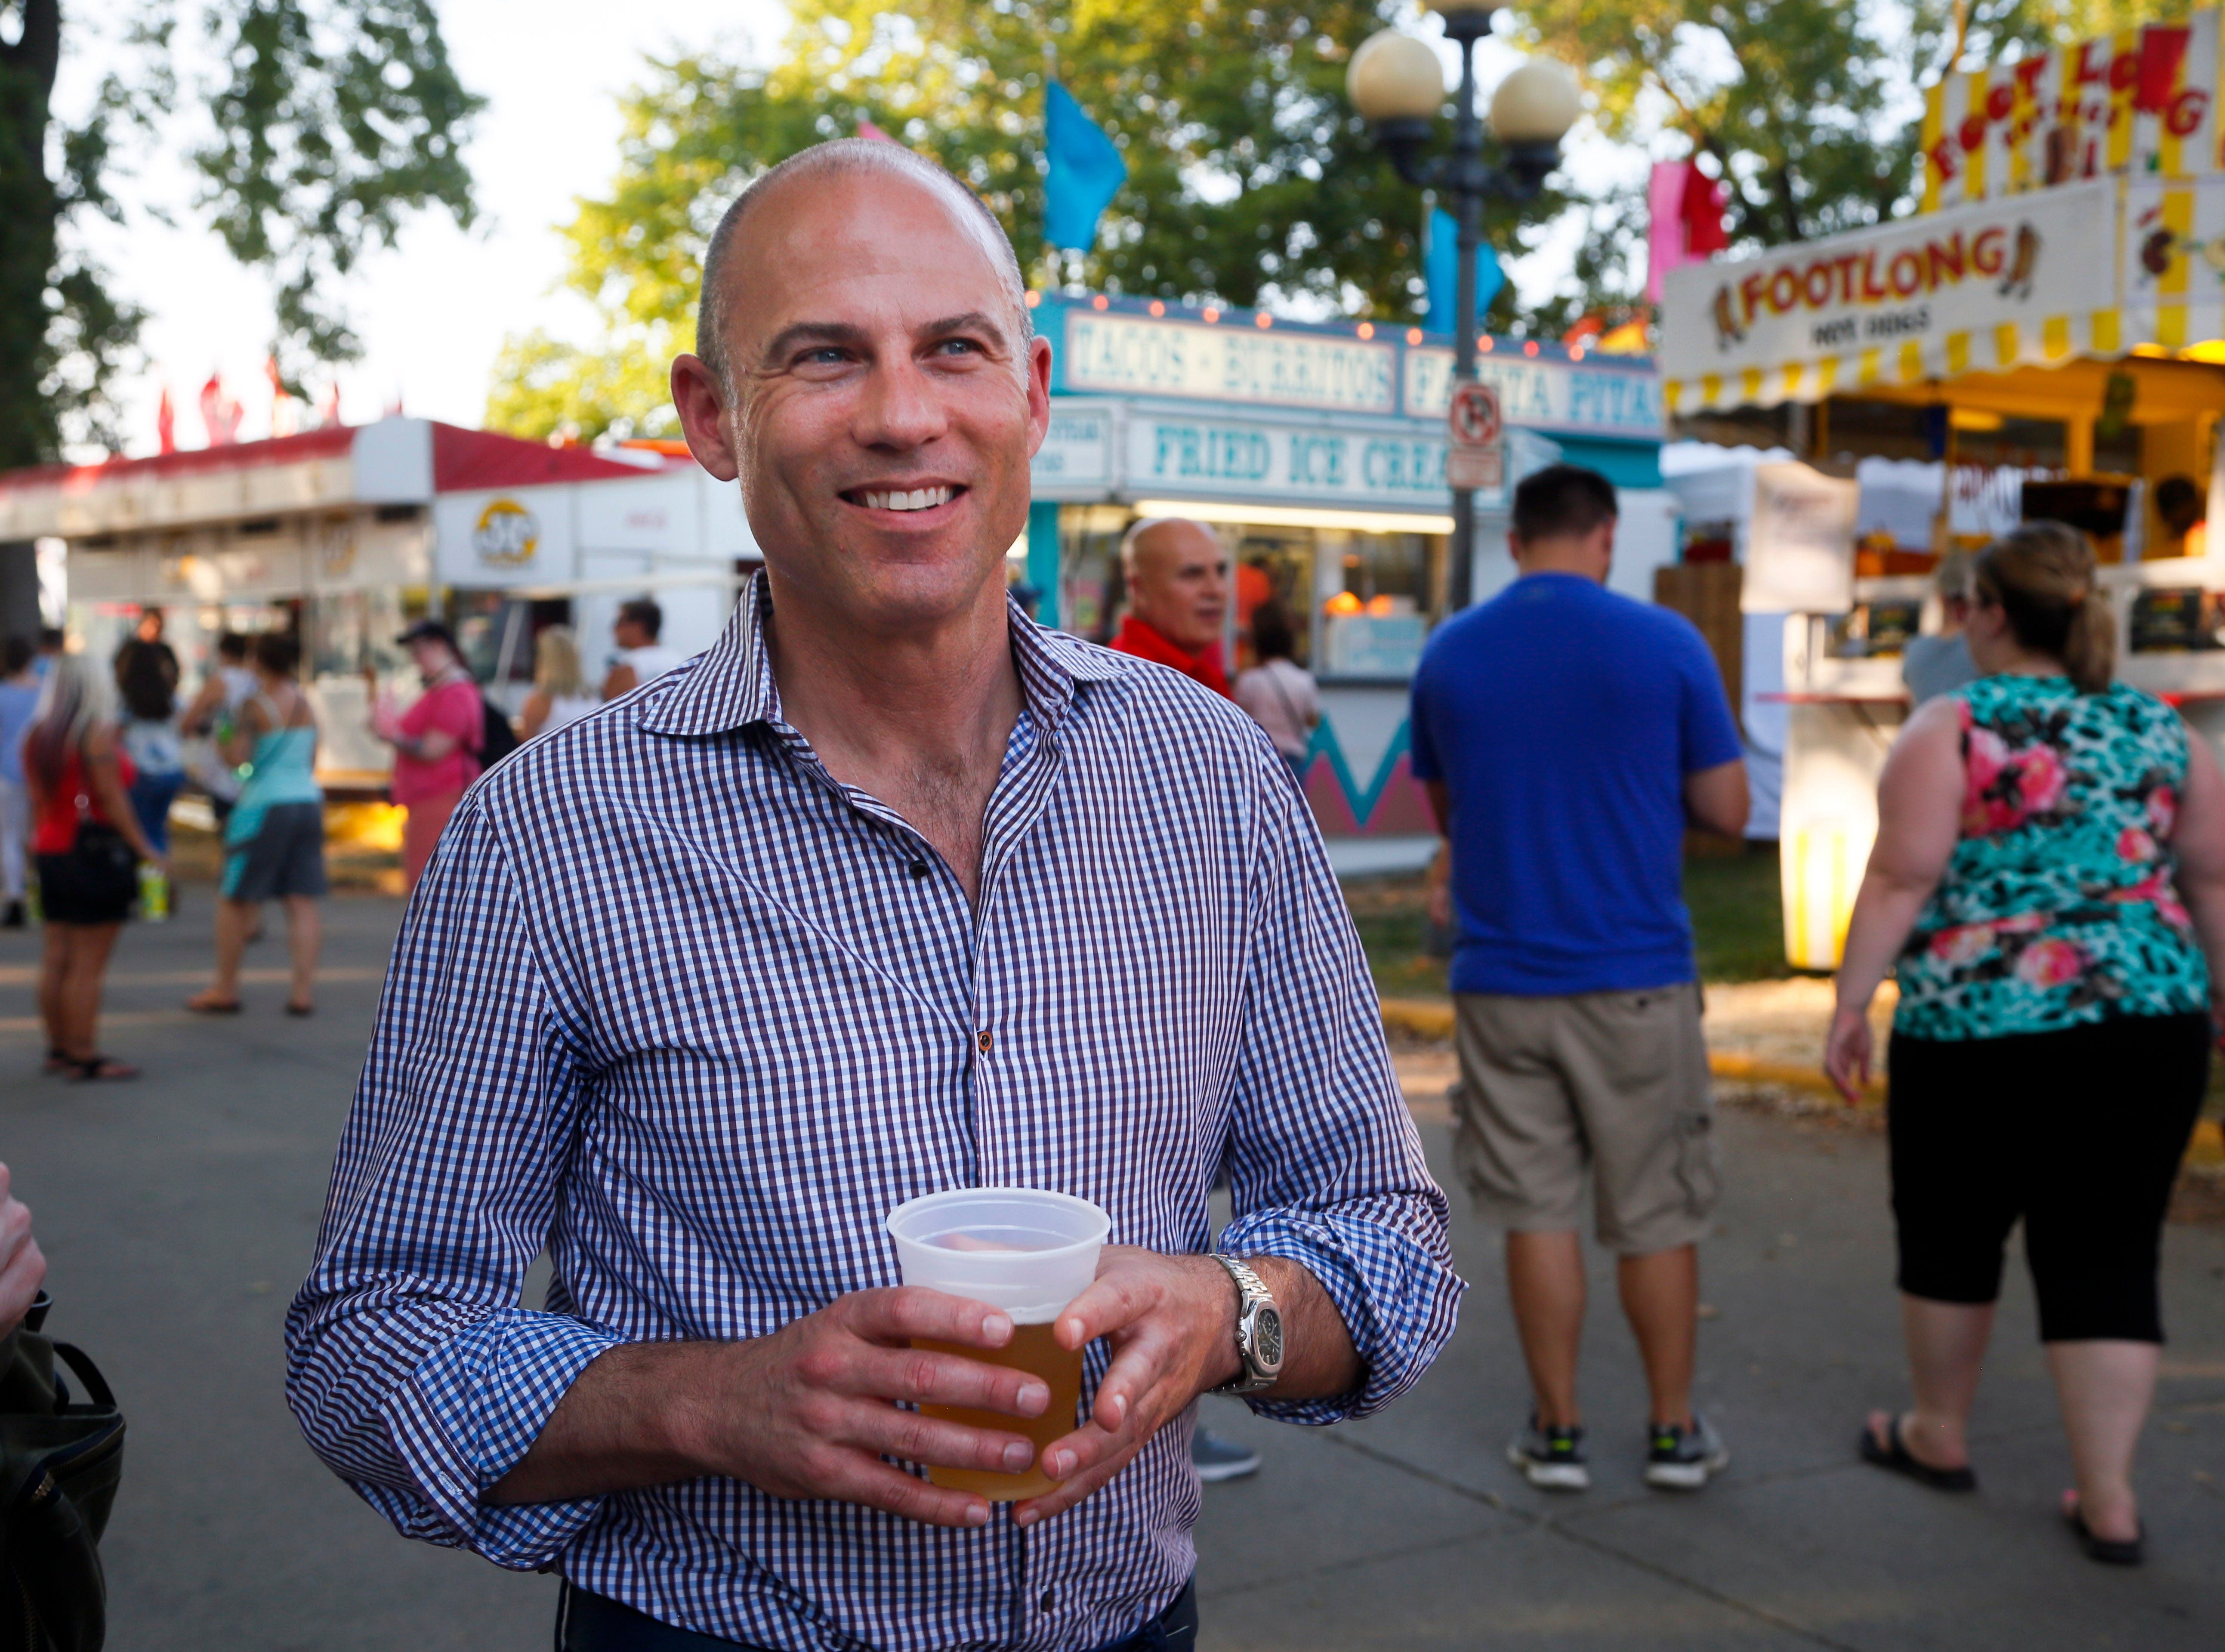 Michael Avenatti, the lawyer known for representing adult film actress Stormy Daniels in her case against President  Donald Trump drinks a beer at the Iowa State Fair Thursday, Aug. 9, 2018.